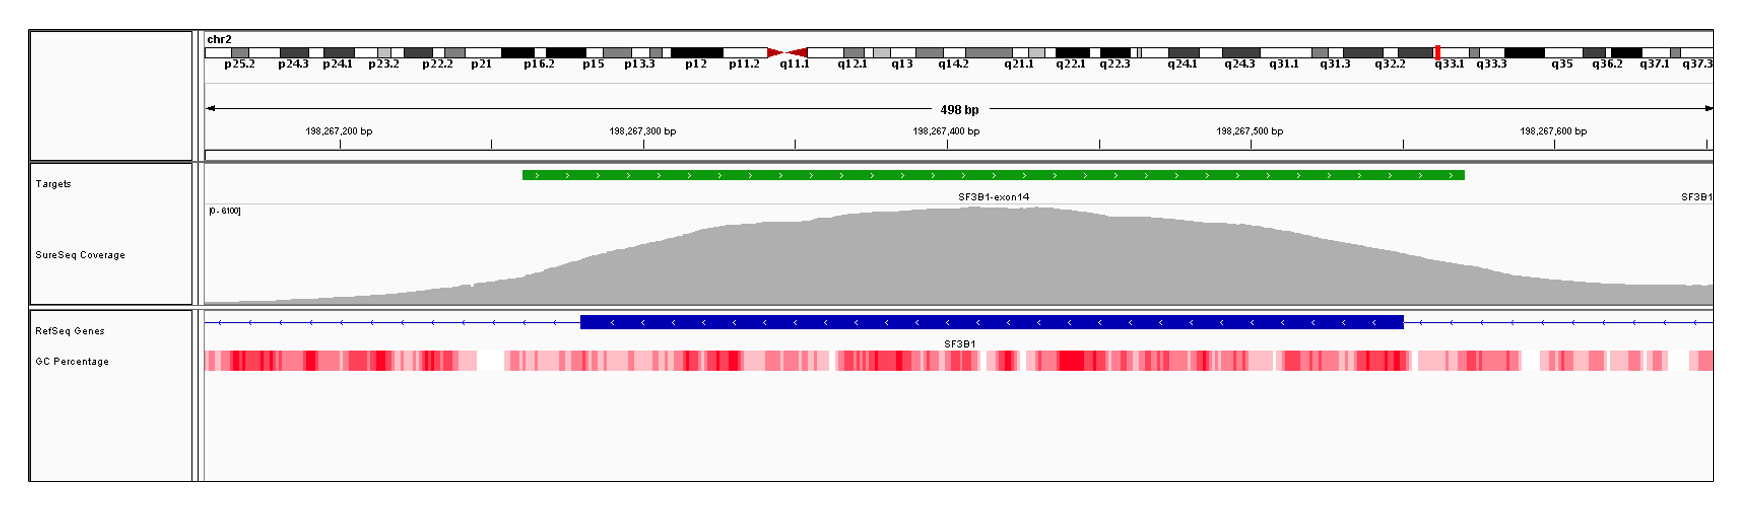 SF3B1 Exon 14 (hg19 chr2:198267280-198267550). Depth of coverage per base (grey). Targeted region (green). Gene coding region as defined by RefSeq (blue). GC percentage (red). Image